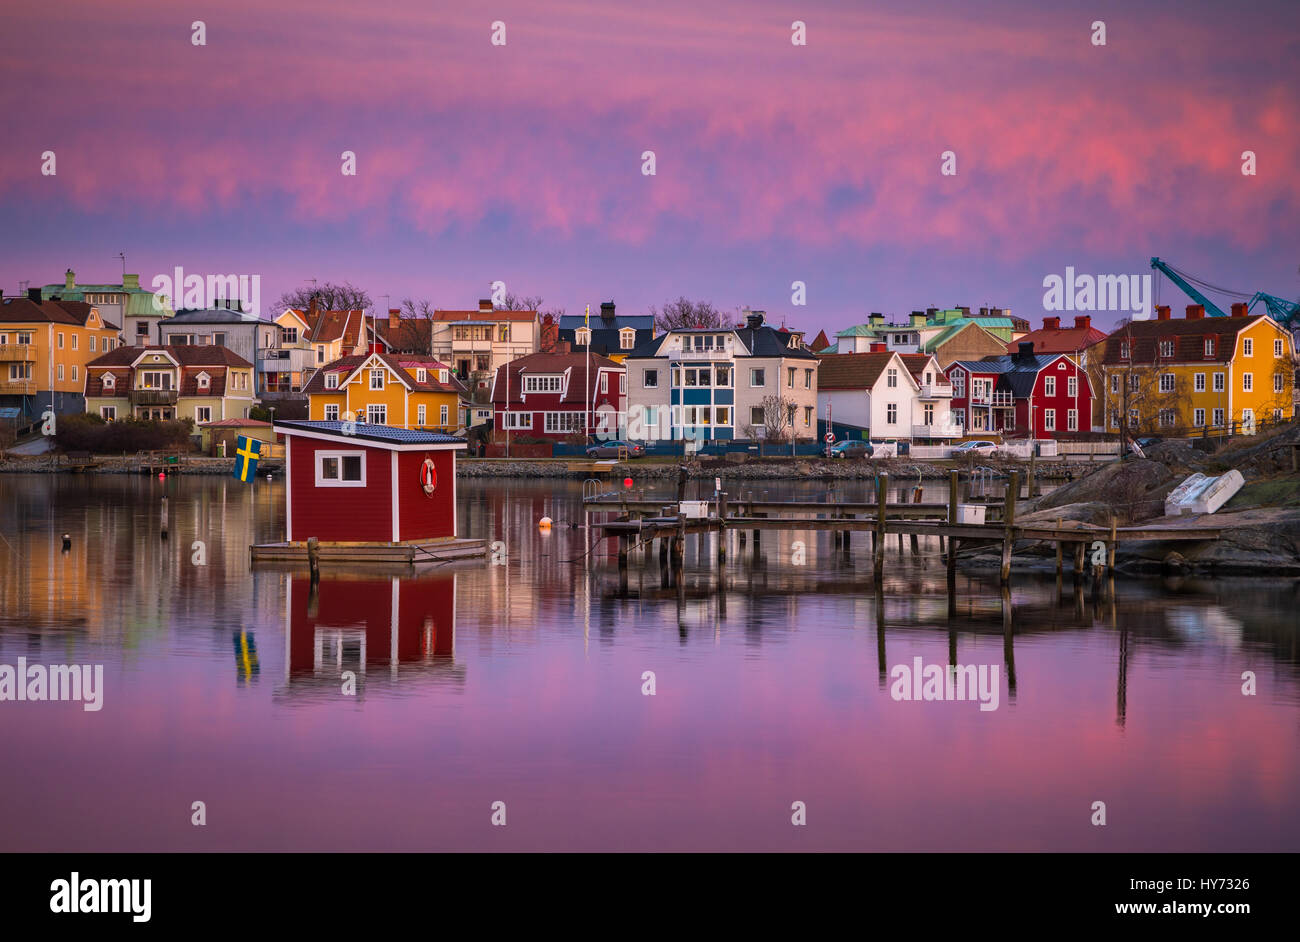 Dock and buildings in Karlskona, Sweden ..... Karlskrona is a locality and the seat of Karlskrona Municipality, Stock Photo